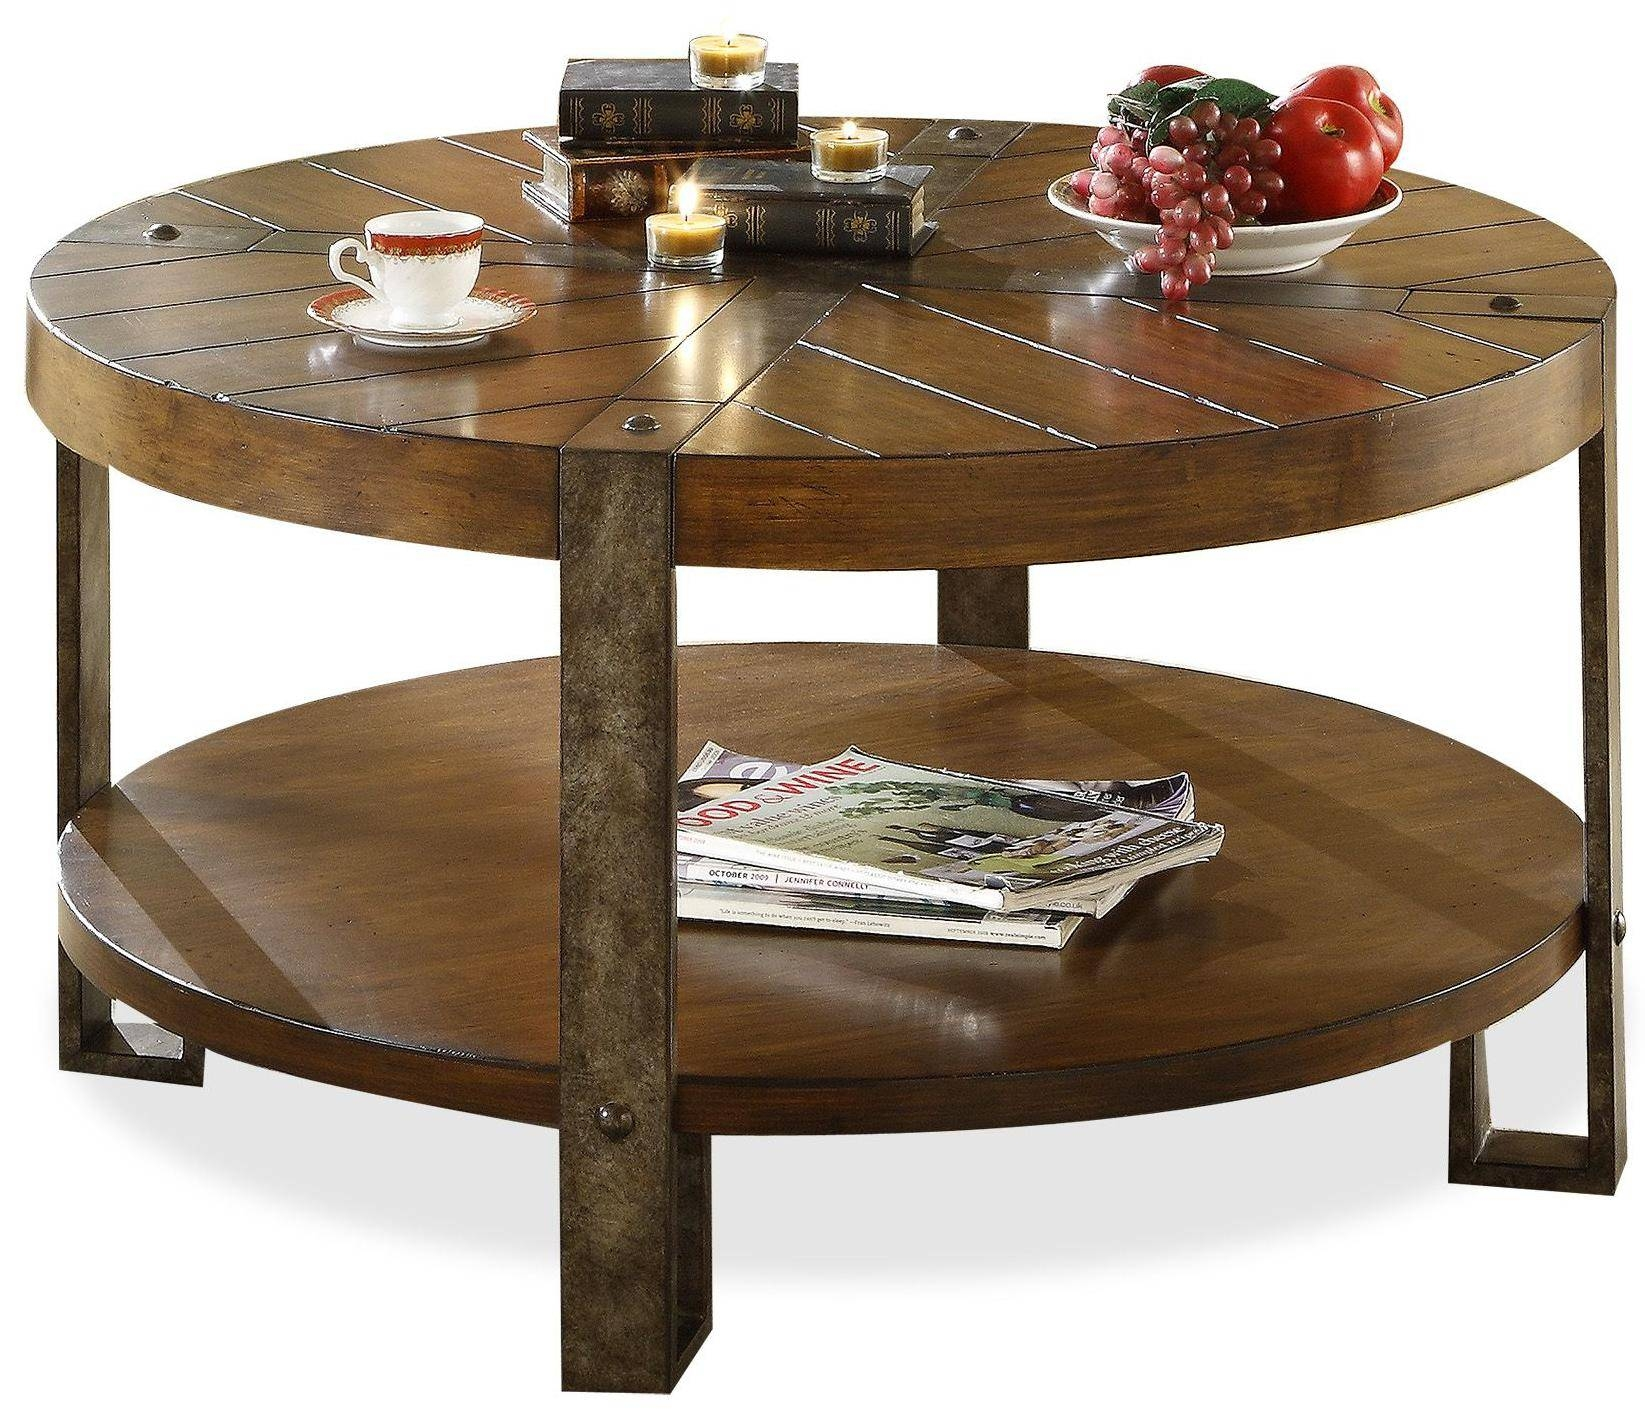 Riverside Furniture Sierra Round Wooden Coffee Table With Metal inside Round Coffee Tables (Image 20 of 30)